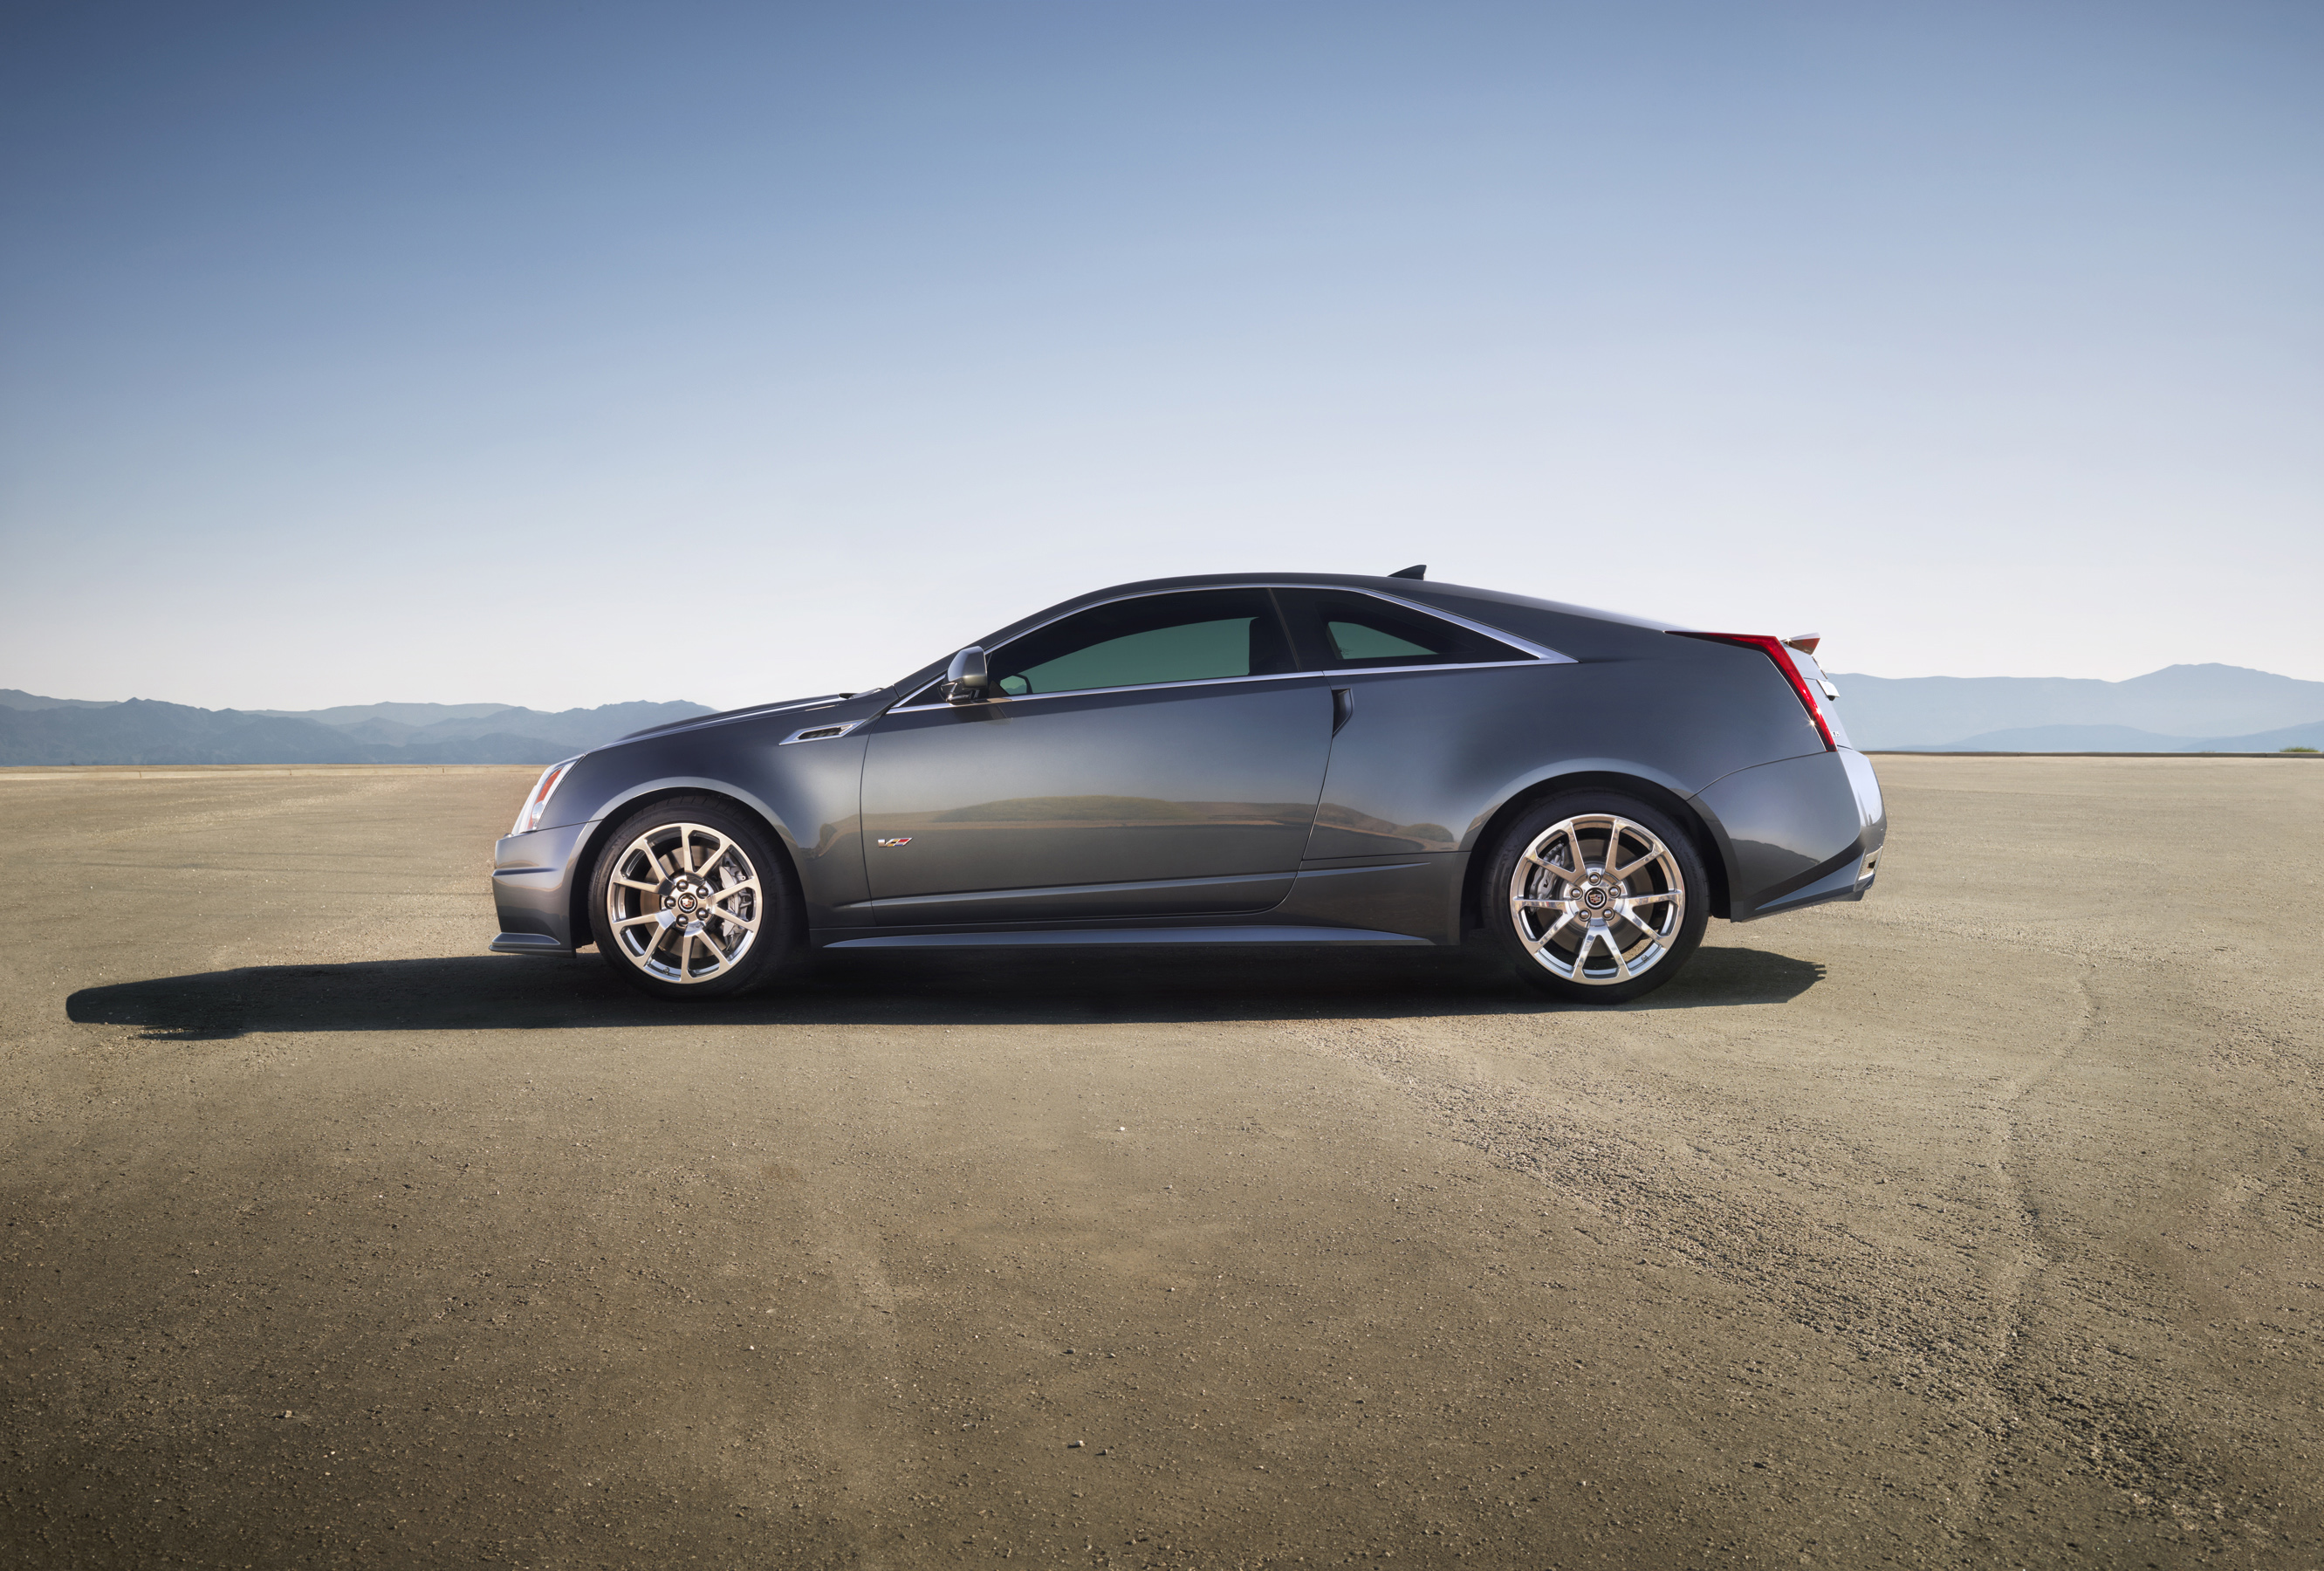 2019 Cadillac BLS photo - 5